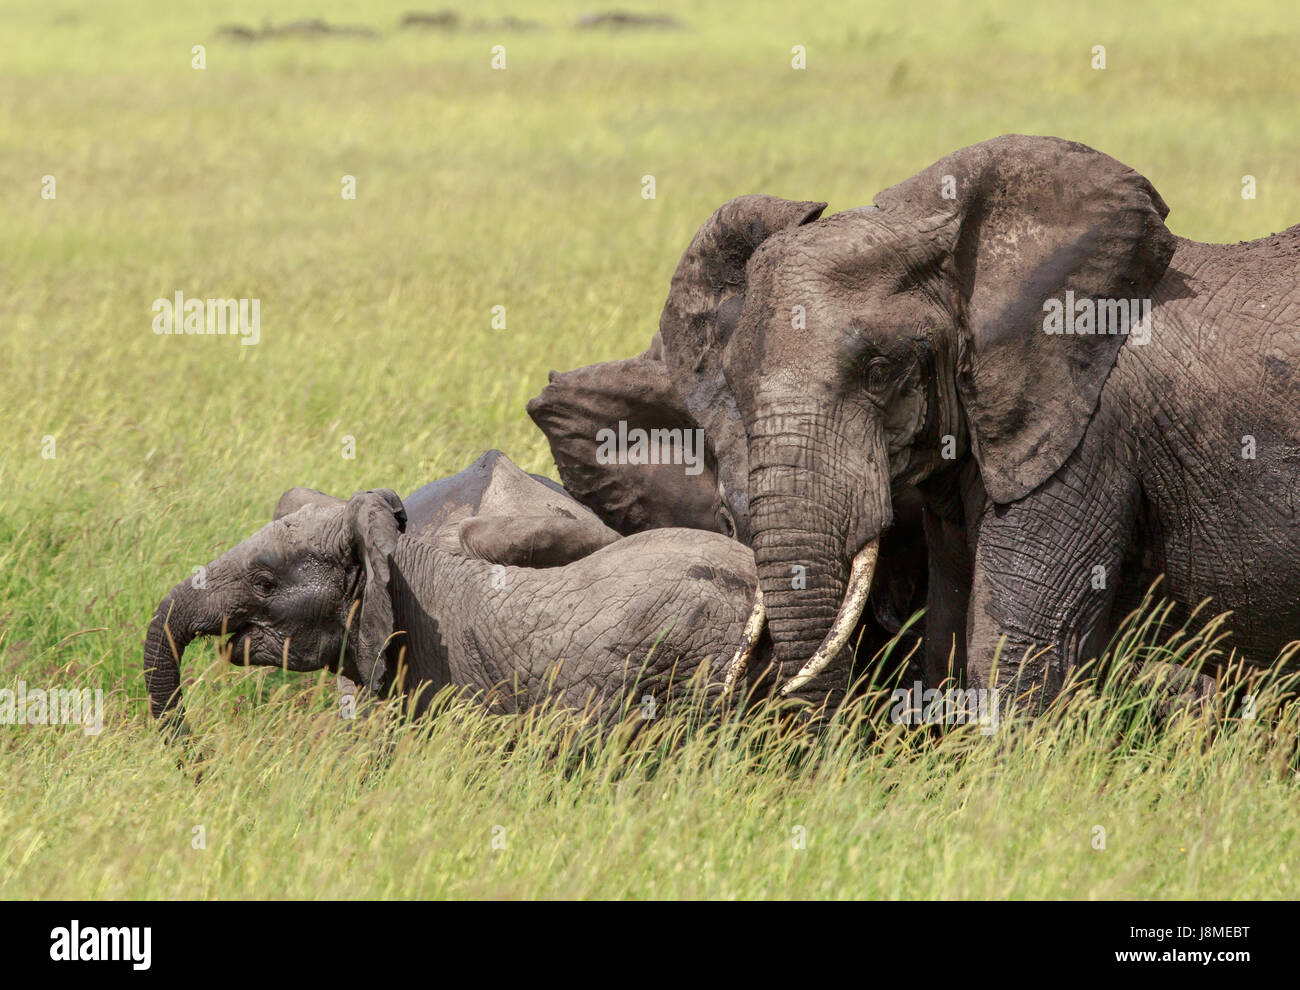 An African Elephant giving us the ears as a warning to stay away from its calf. - Stock Image